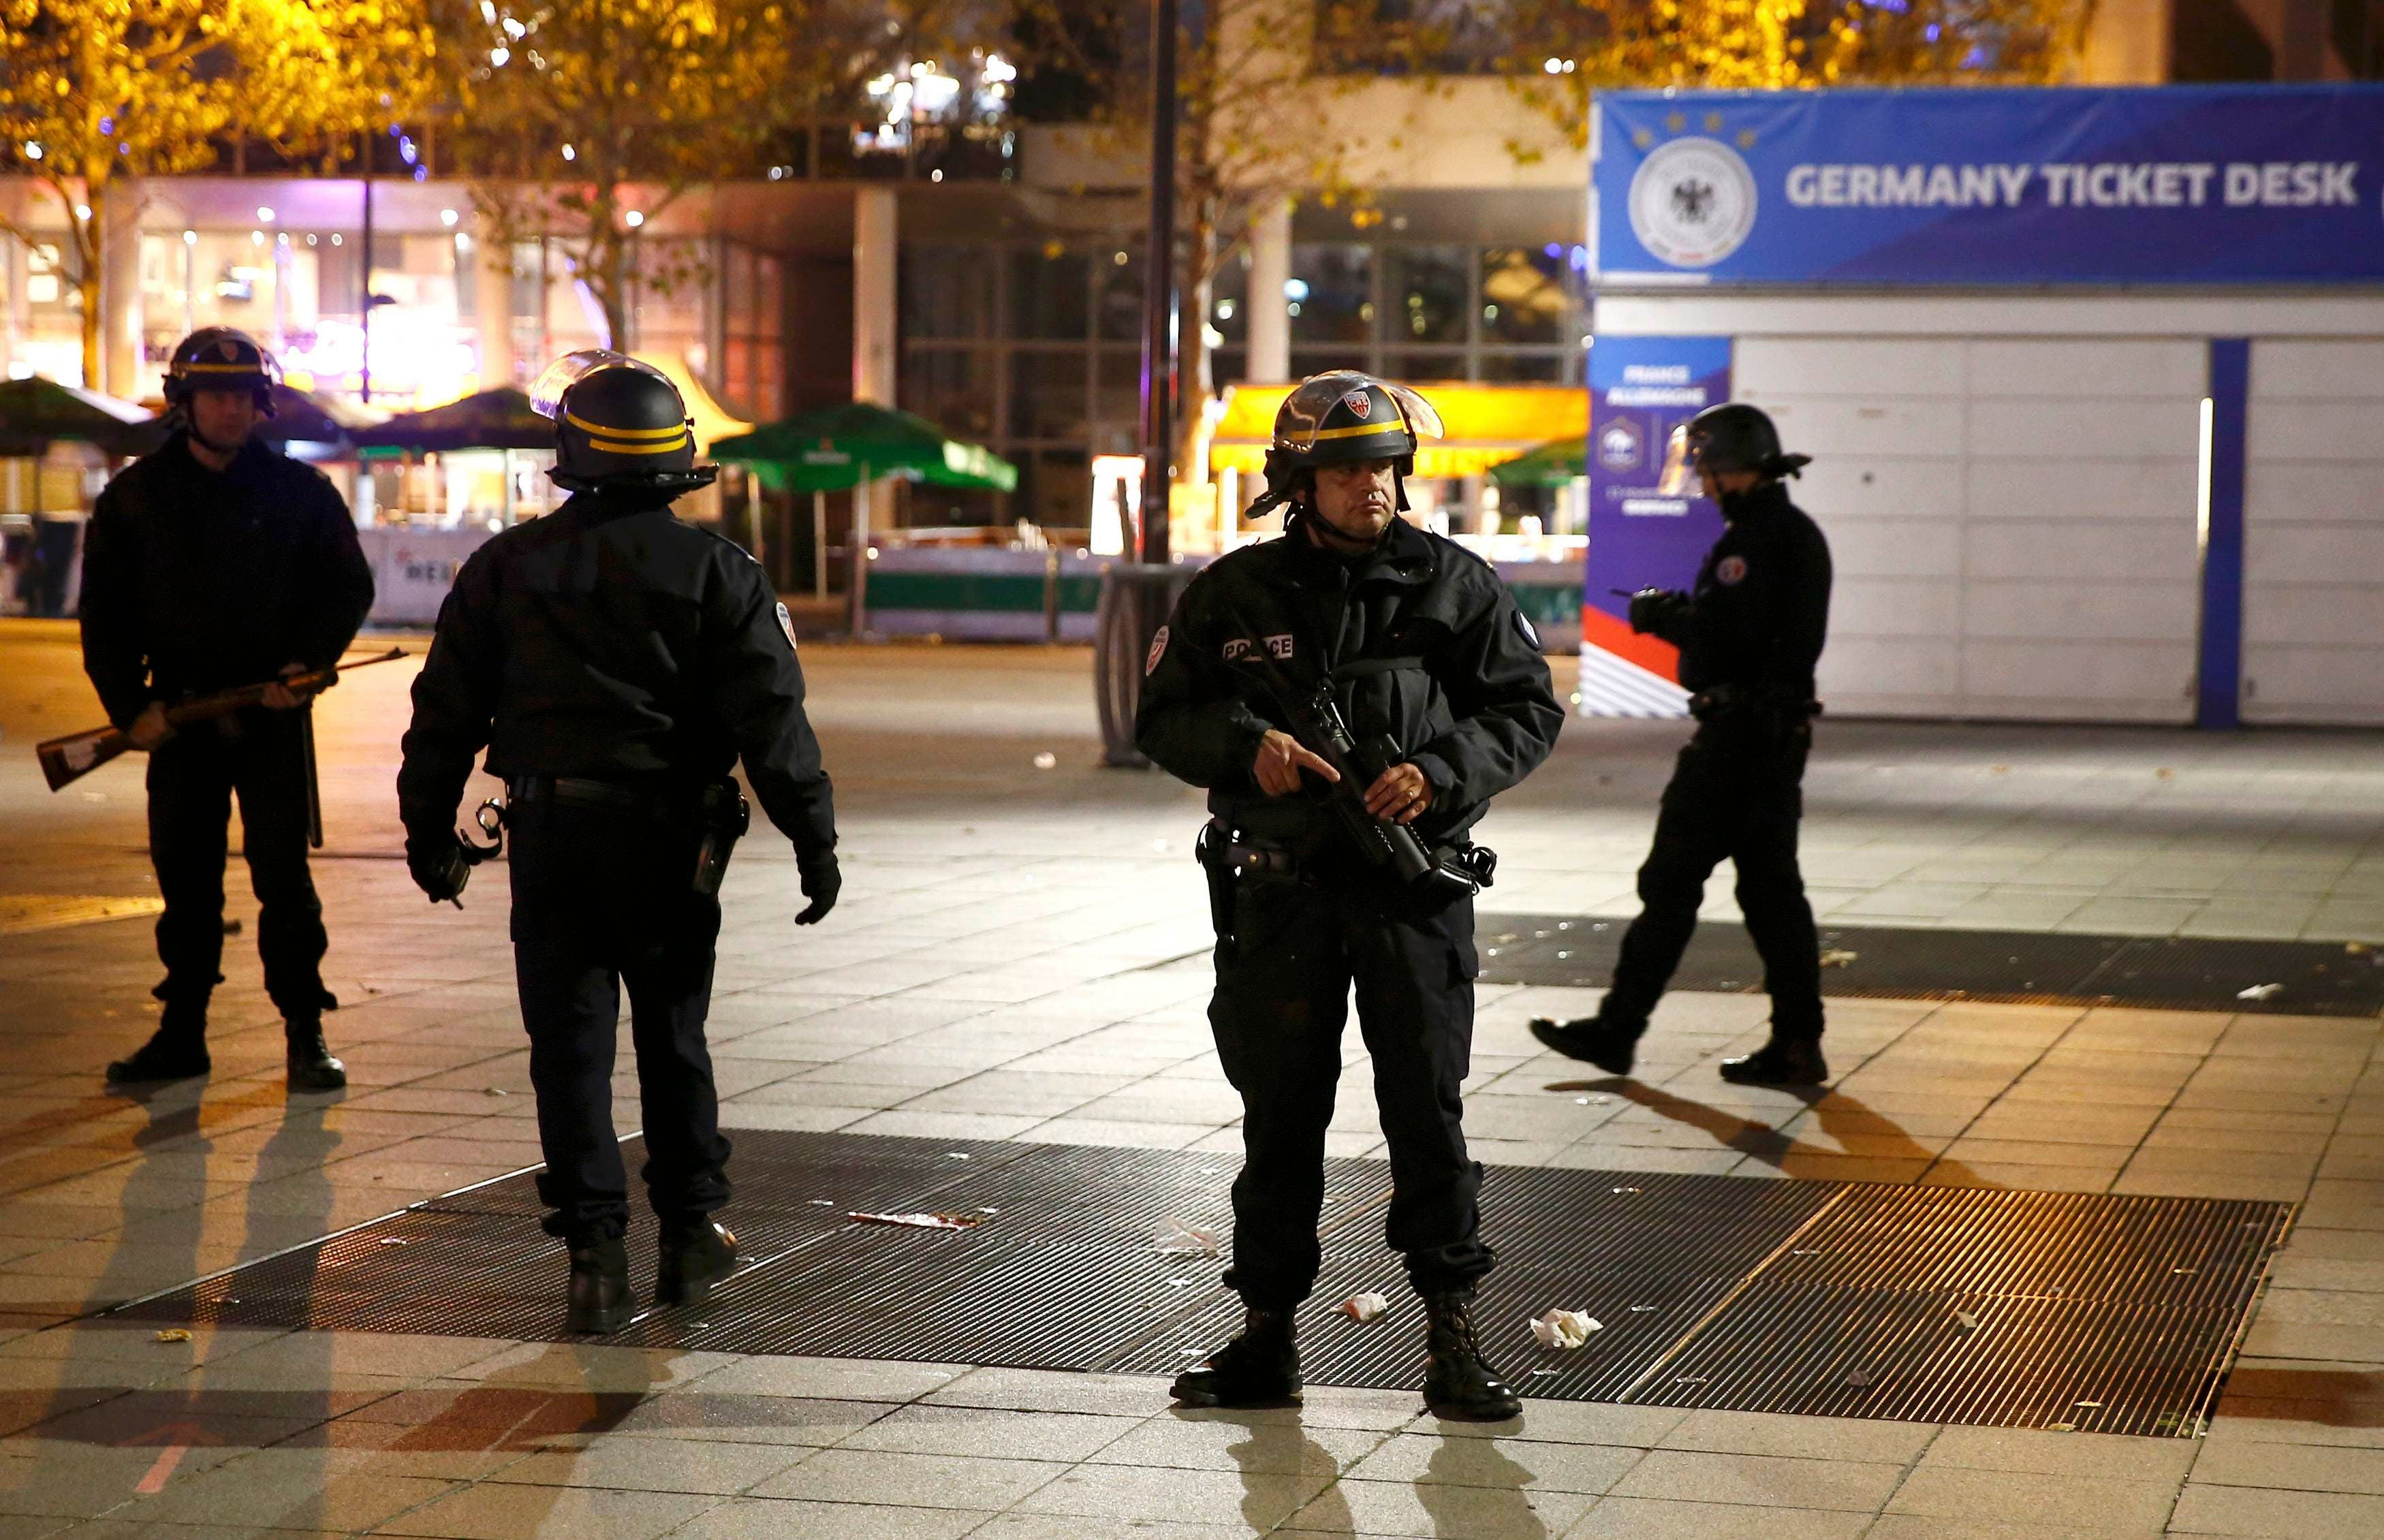 Police stand outside the Stade de France where explosions were reported to have detonated outside the stadium during the France vs German friendly soccer match near Paris, November 13, 2015. (Reuters)